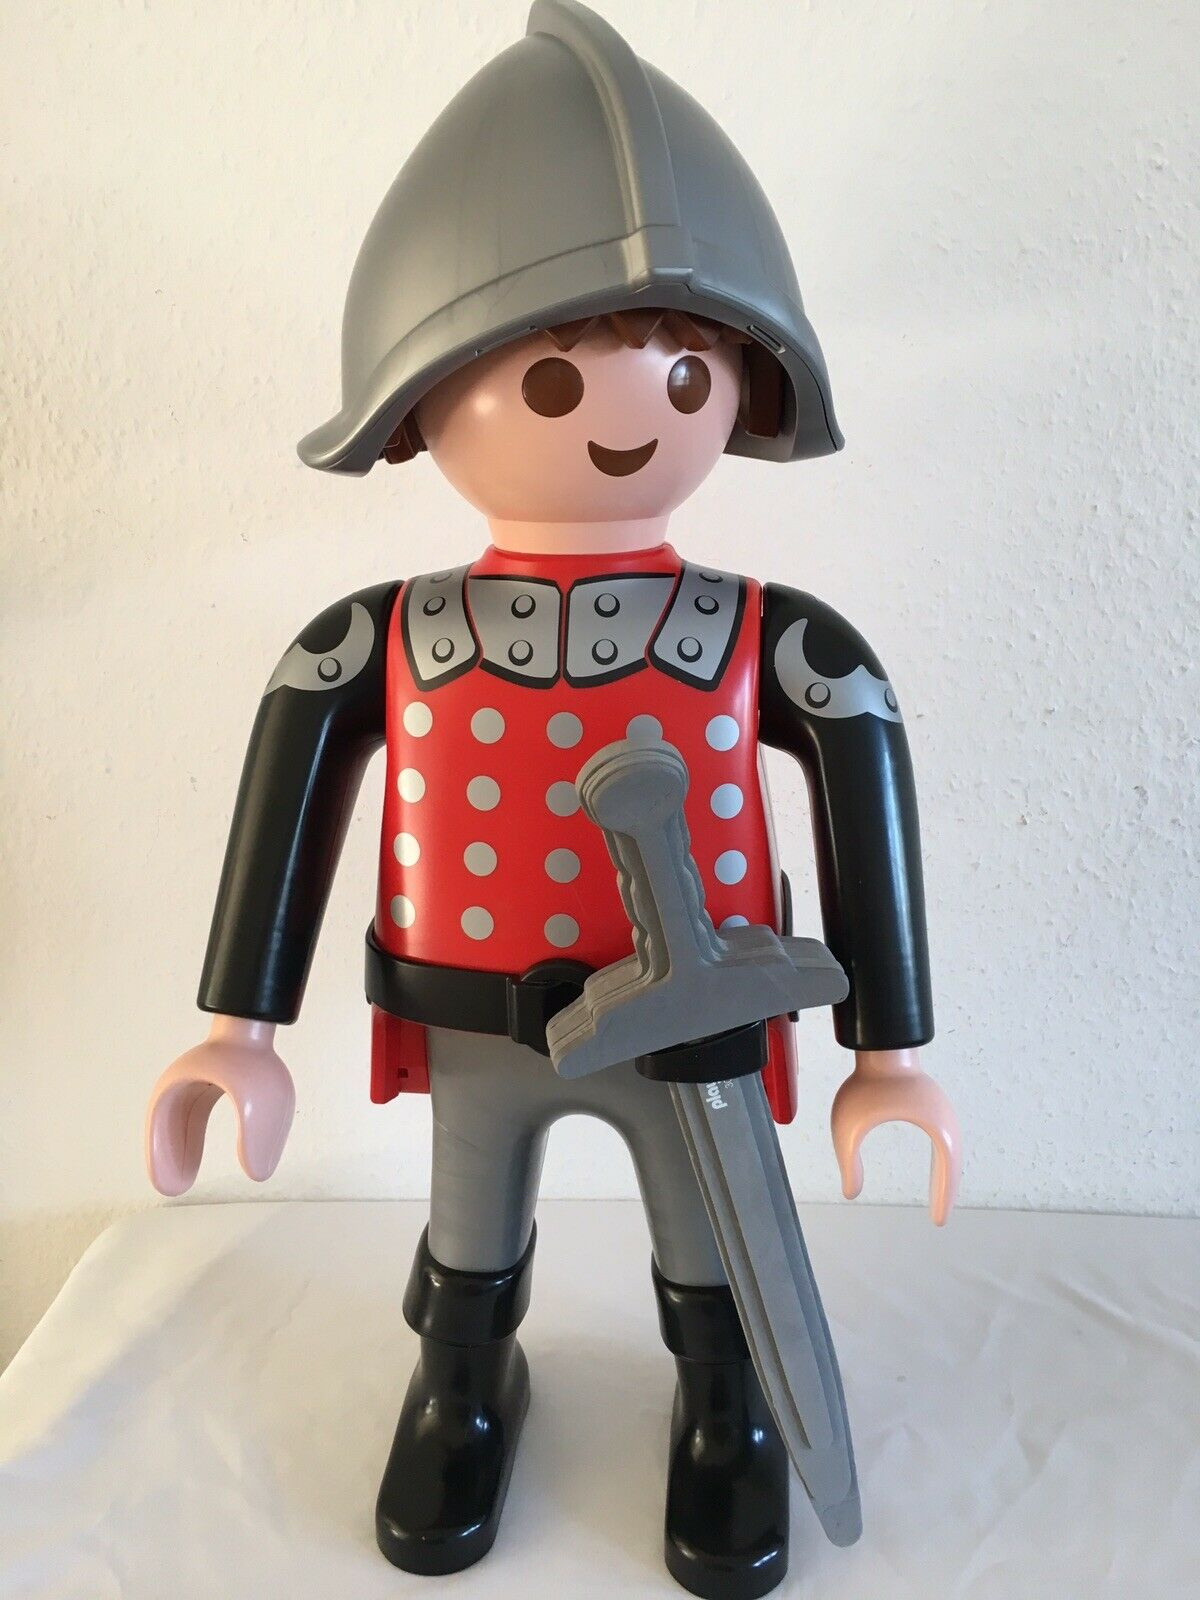 Playmobil Extra Large 60cm High Knight Figure Fantastic Condition